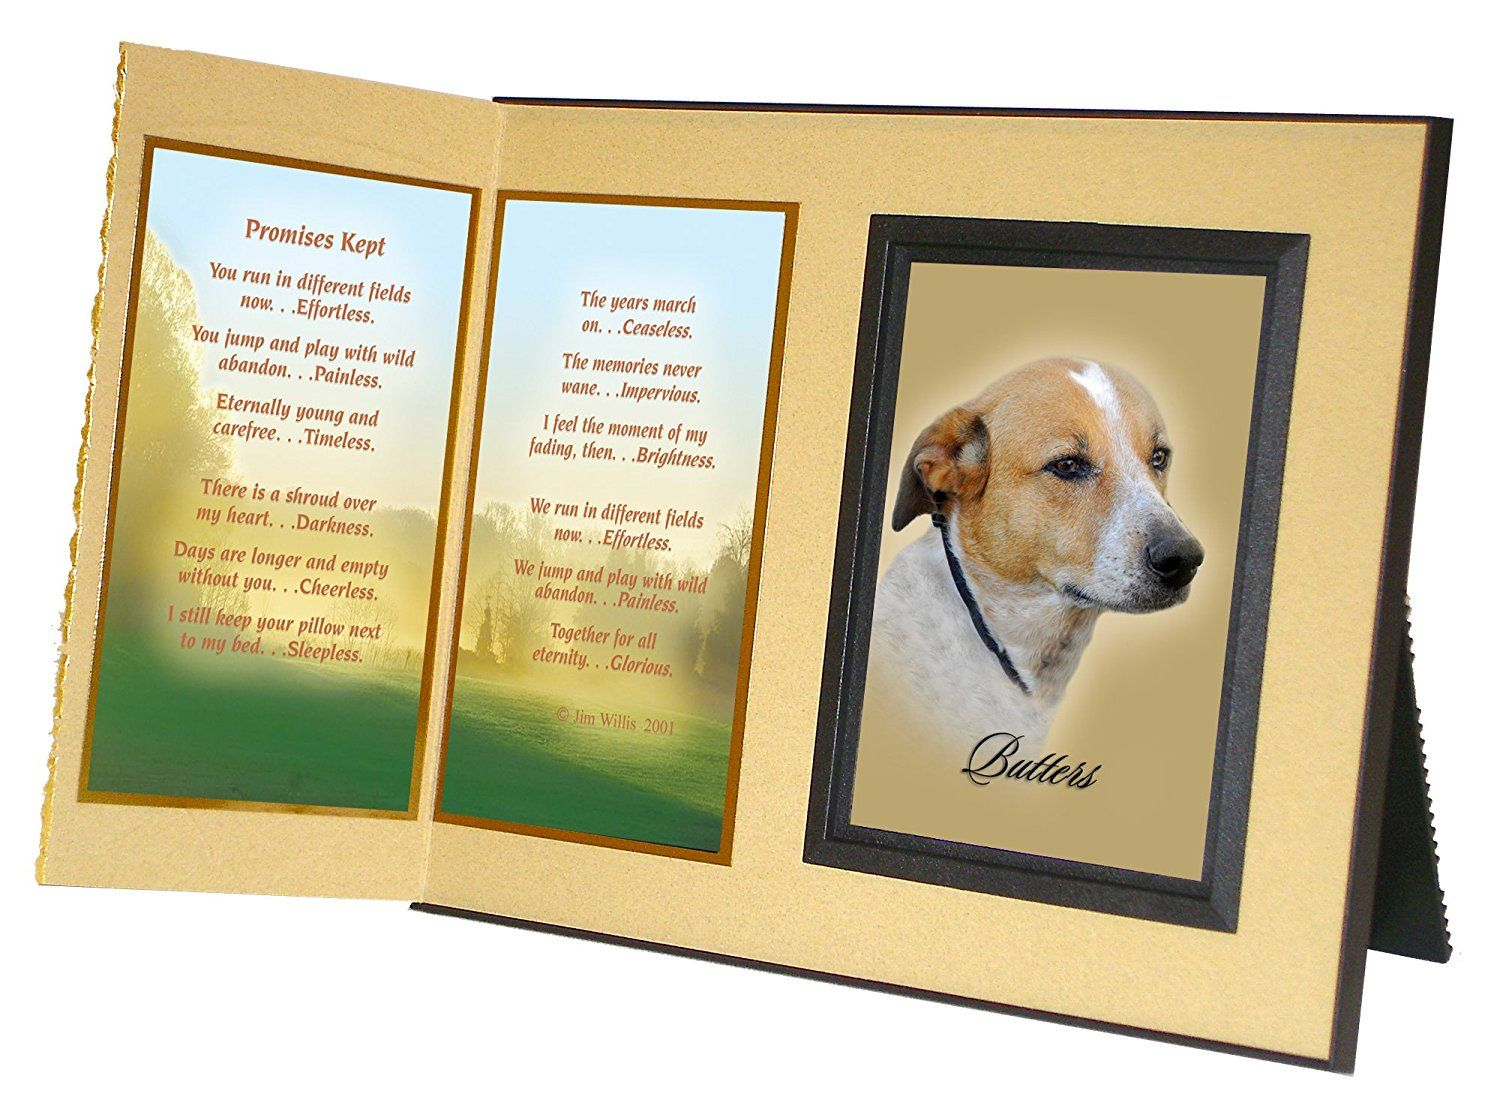 Promises kept memorial picture frame and pet loss